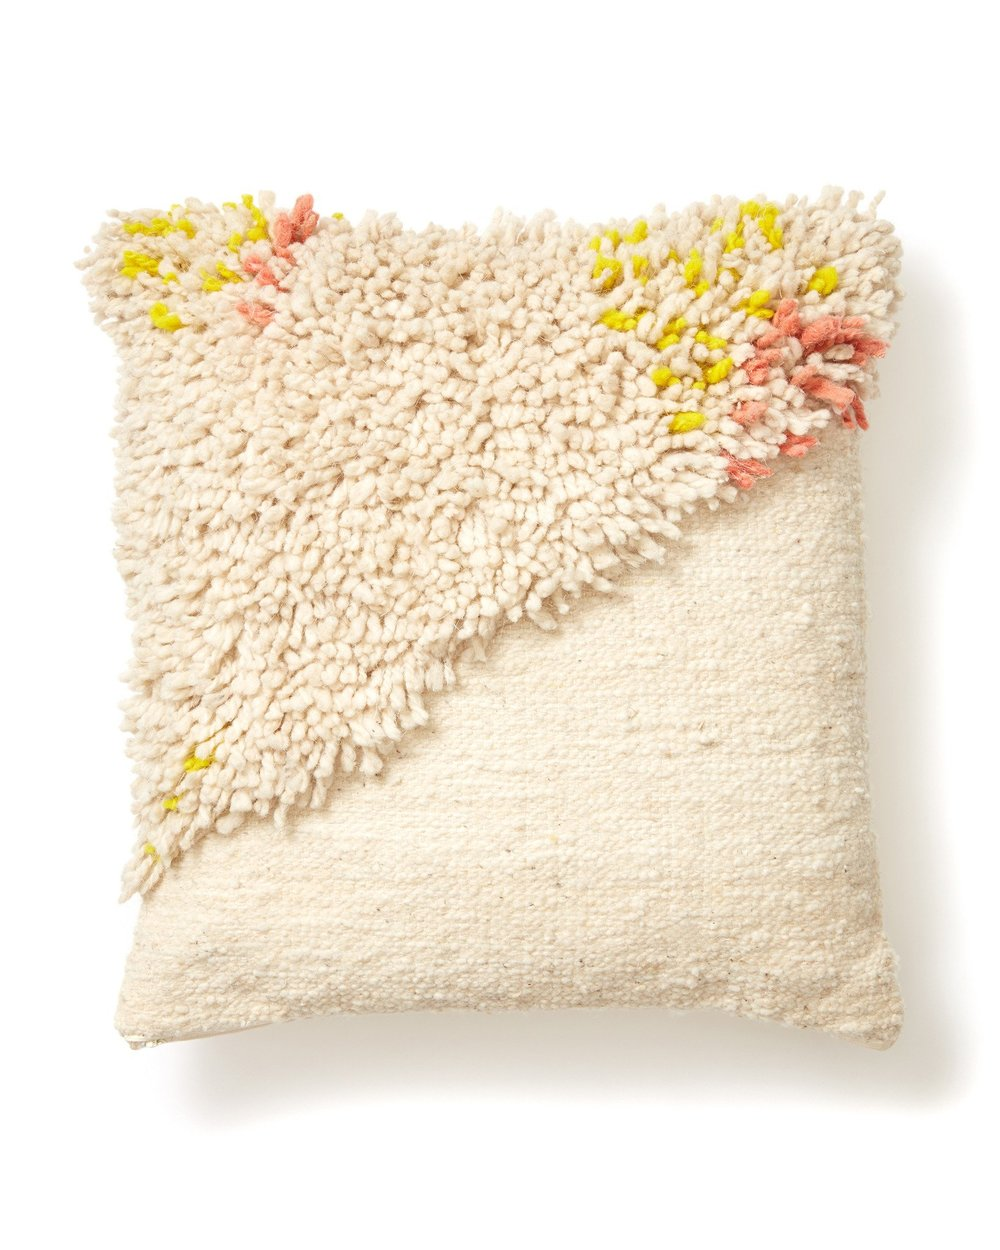 SPLIT SHAG PILLOW  $215.00